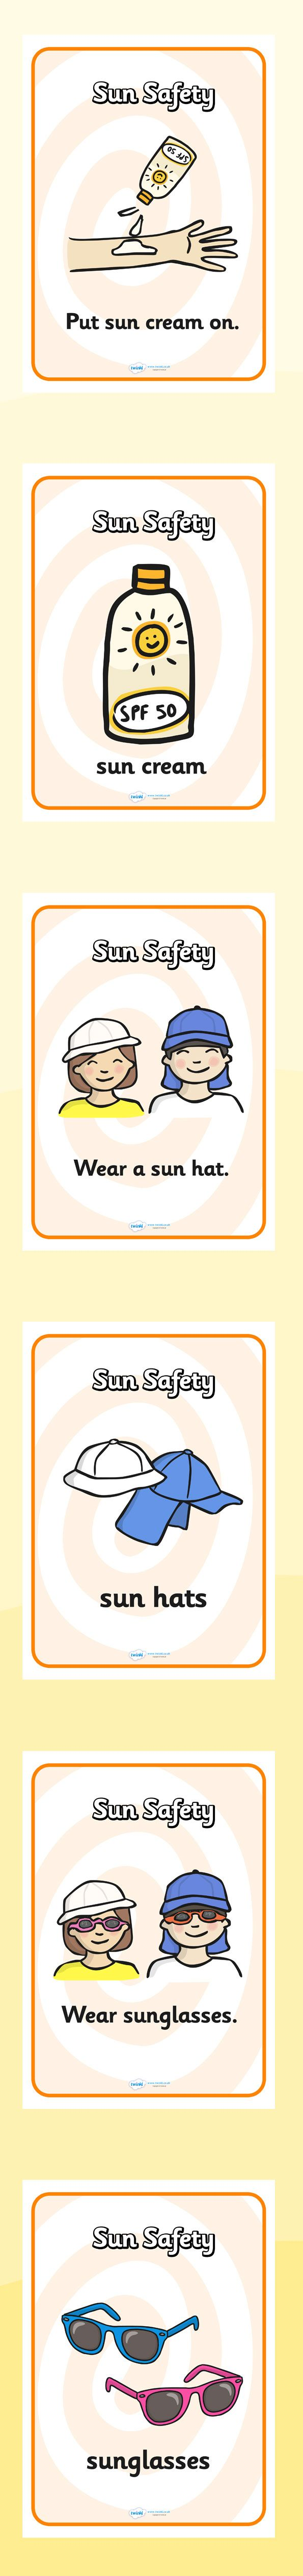 The seaside- Sun safety display posters